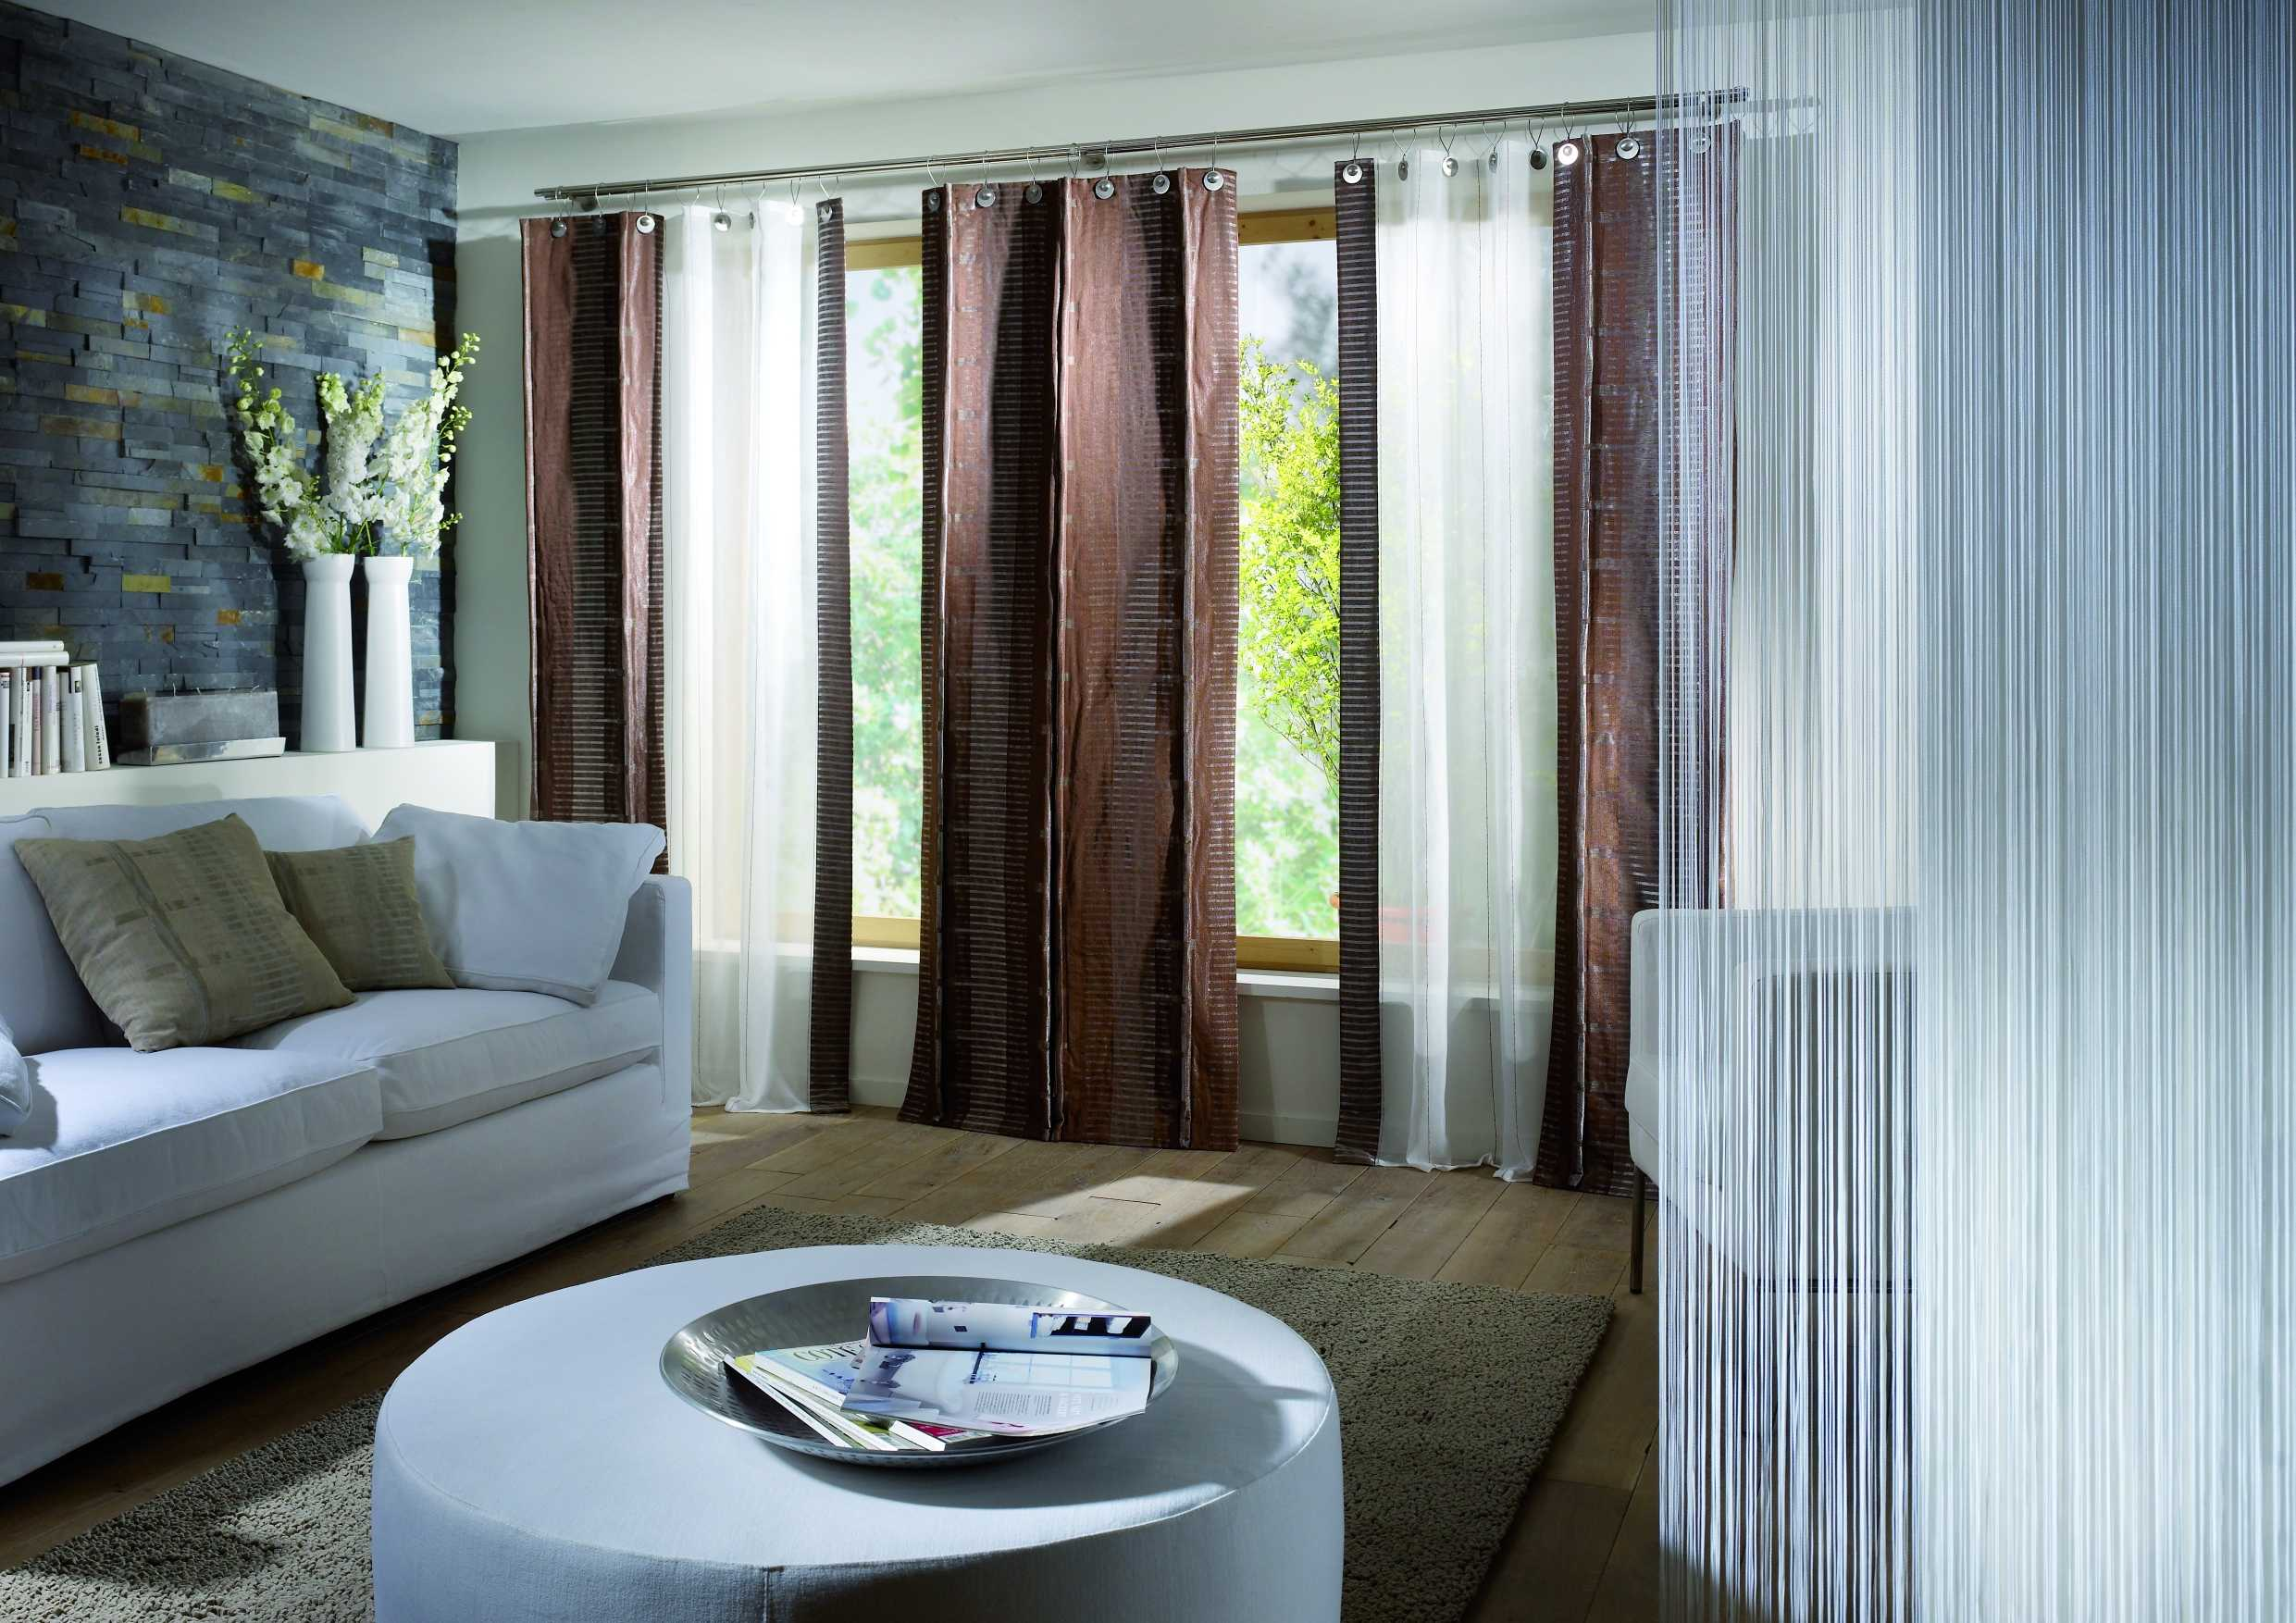 Superb Design Of The Living Room Drapes With White Wall Ideas Added With White Sofa And Brown Wooden Floor Ideas